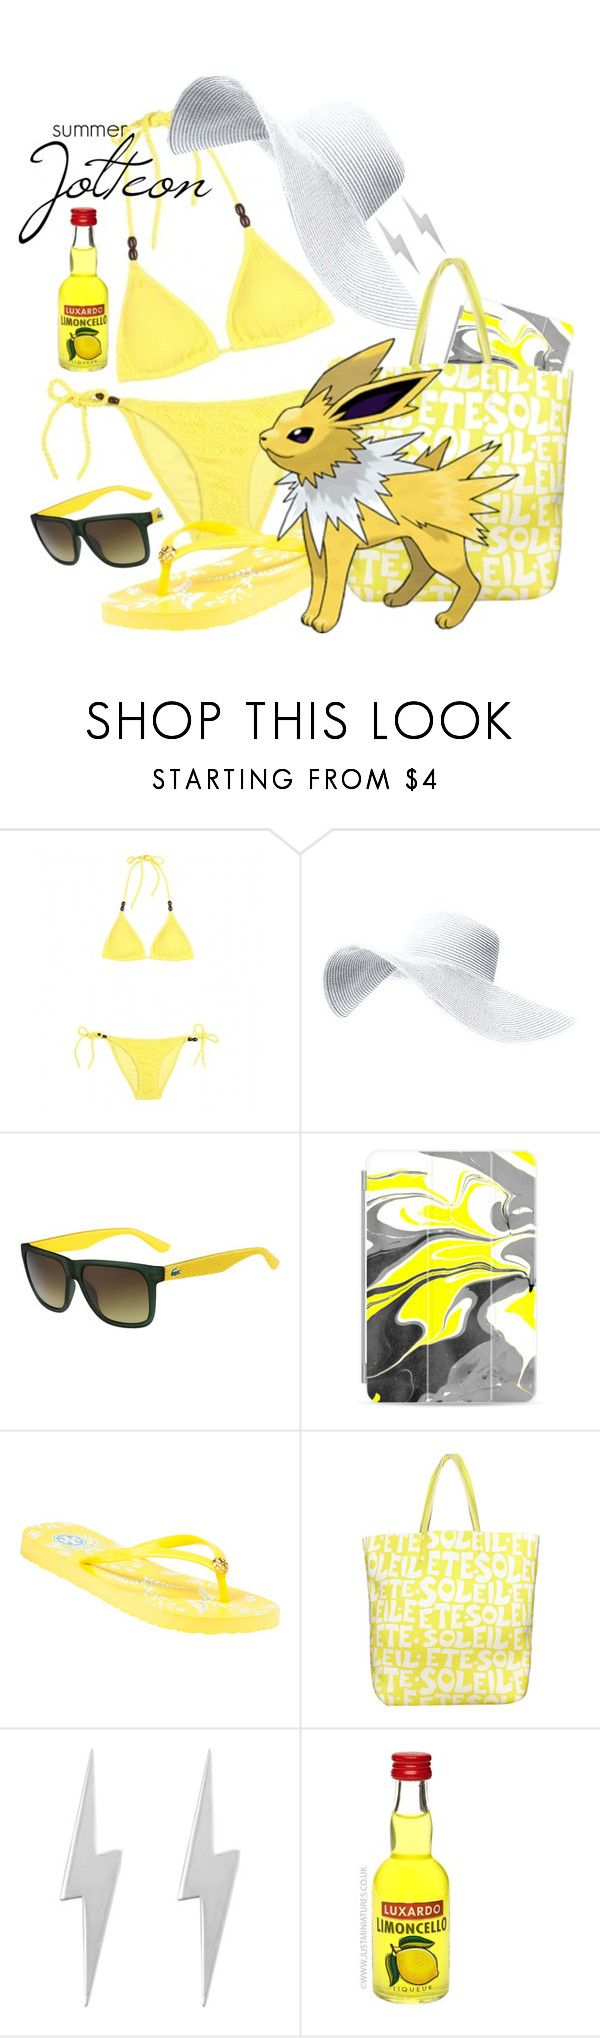 """Pokemon Beach: Jolteon"" by freezespell ❤ liked on Polyvore featuring Heidi Klein, Lacoste, Casetify, Tory Burch, Glamourpuss NYC and Edge Only"